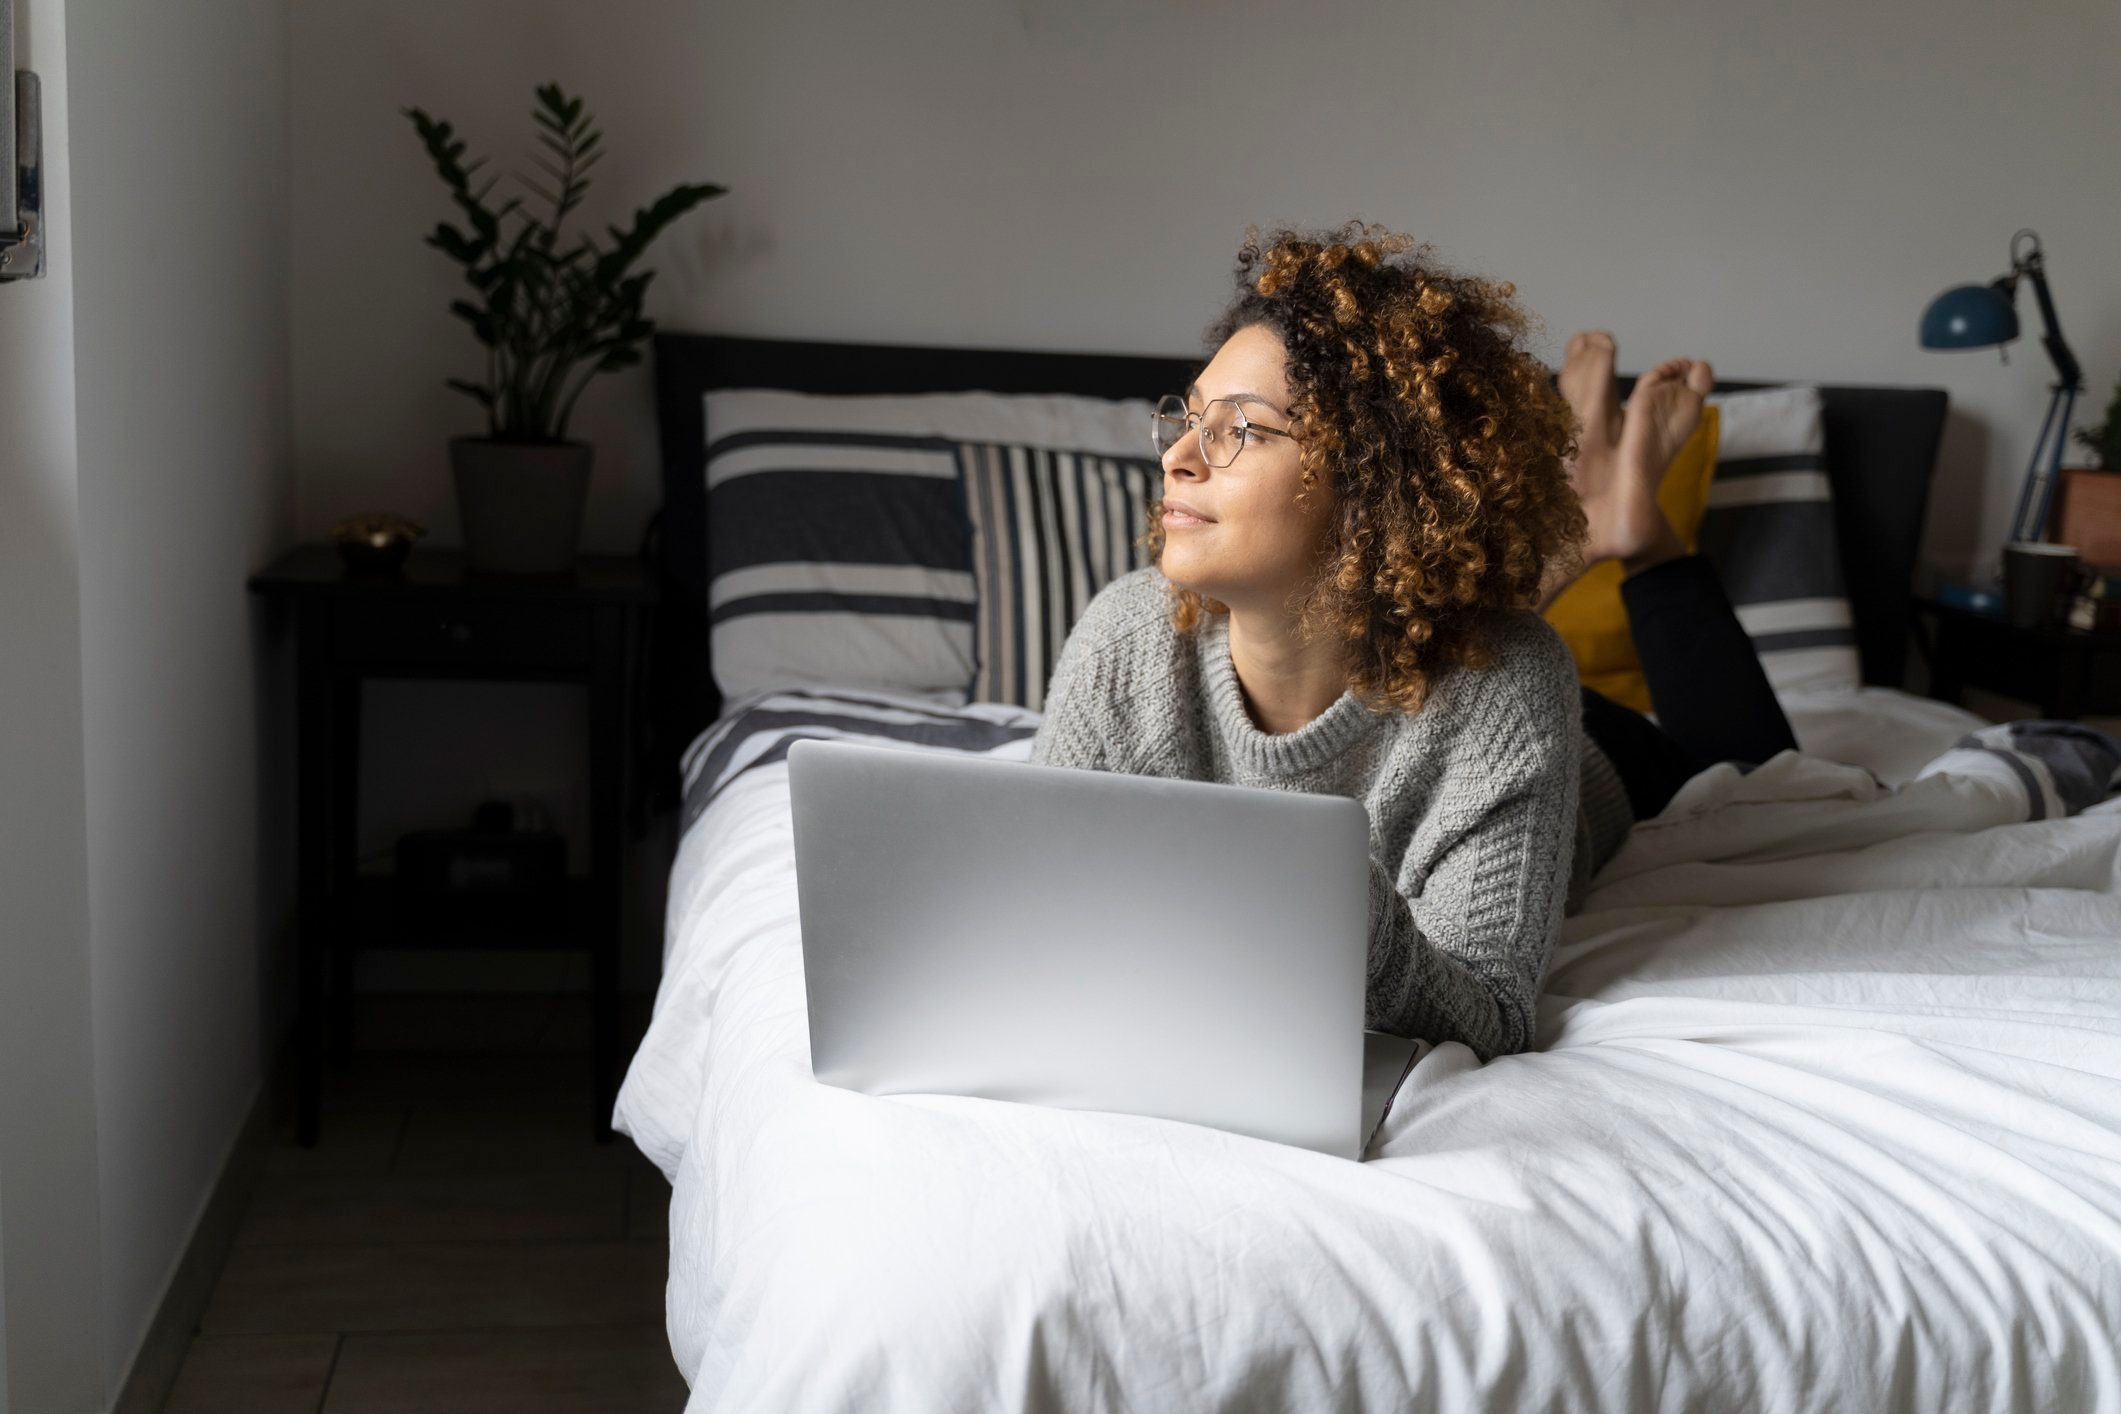 woman laying in bed with laptop